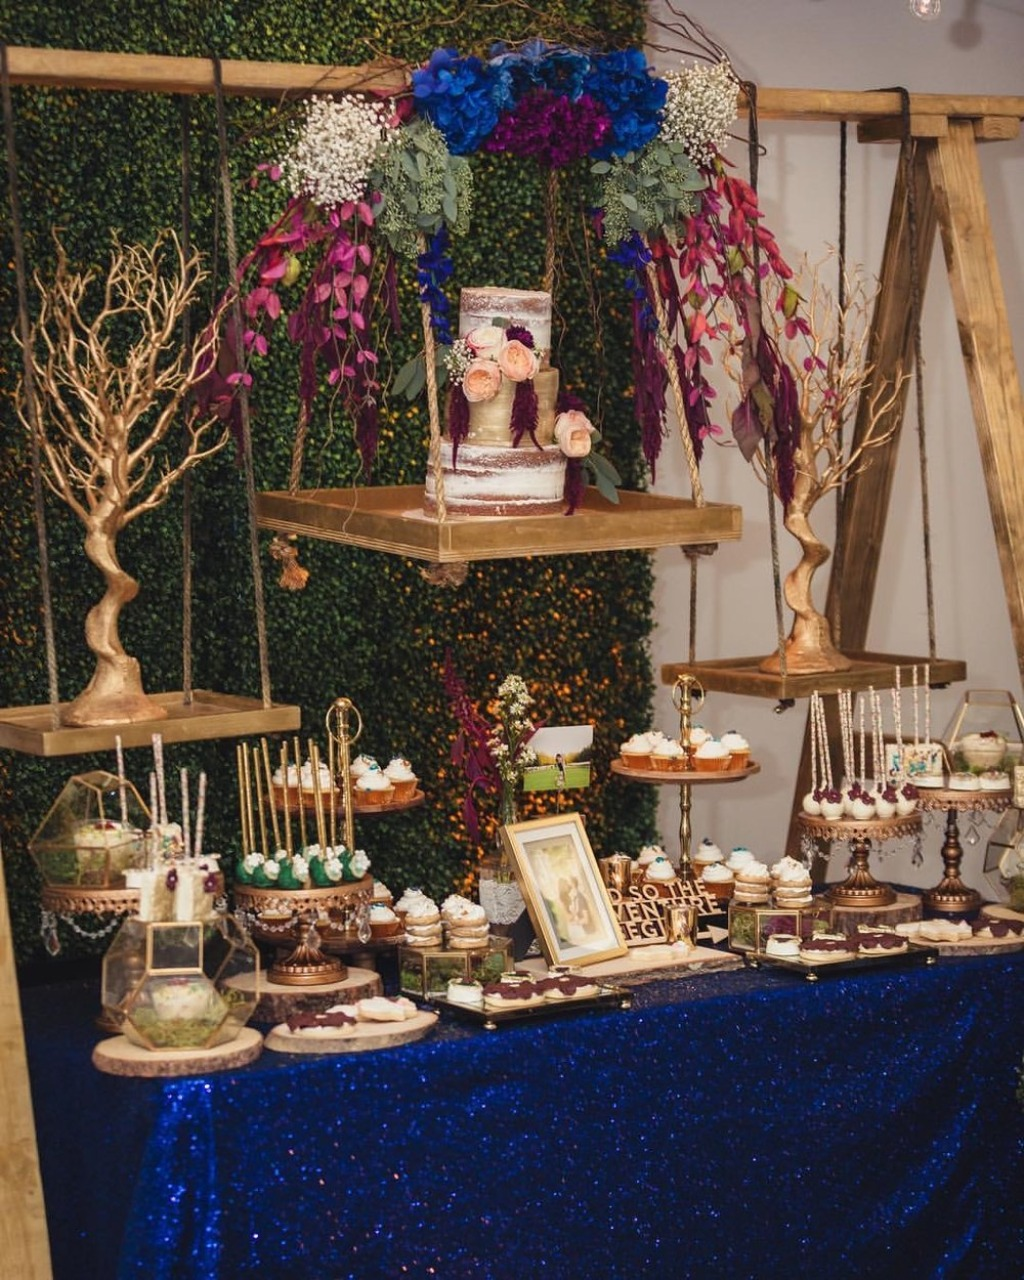 Creative Wedding Dessert Tables with Opulent Treasures collection of cake stands, dessert stands & more!